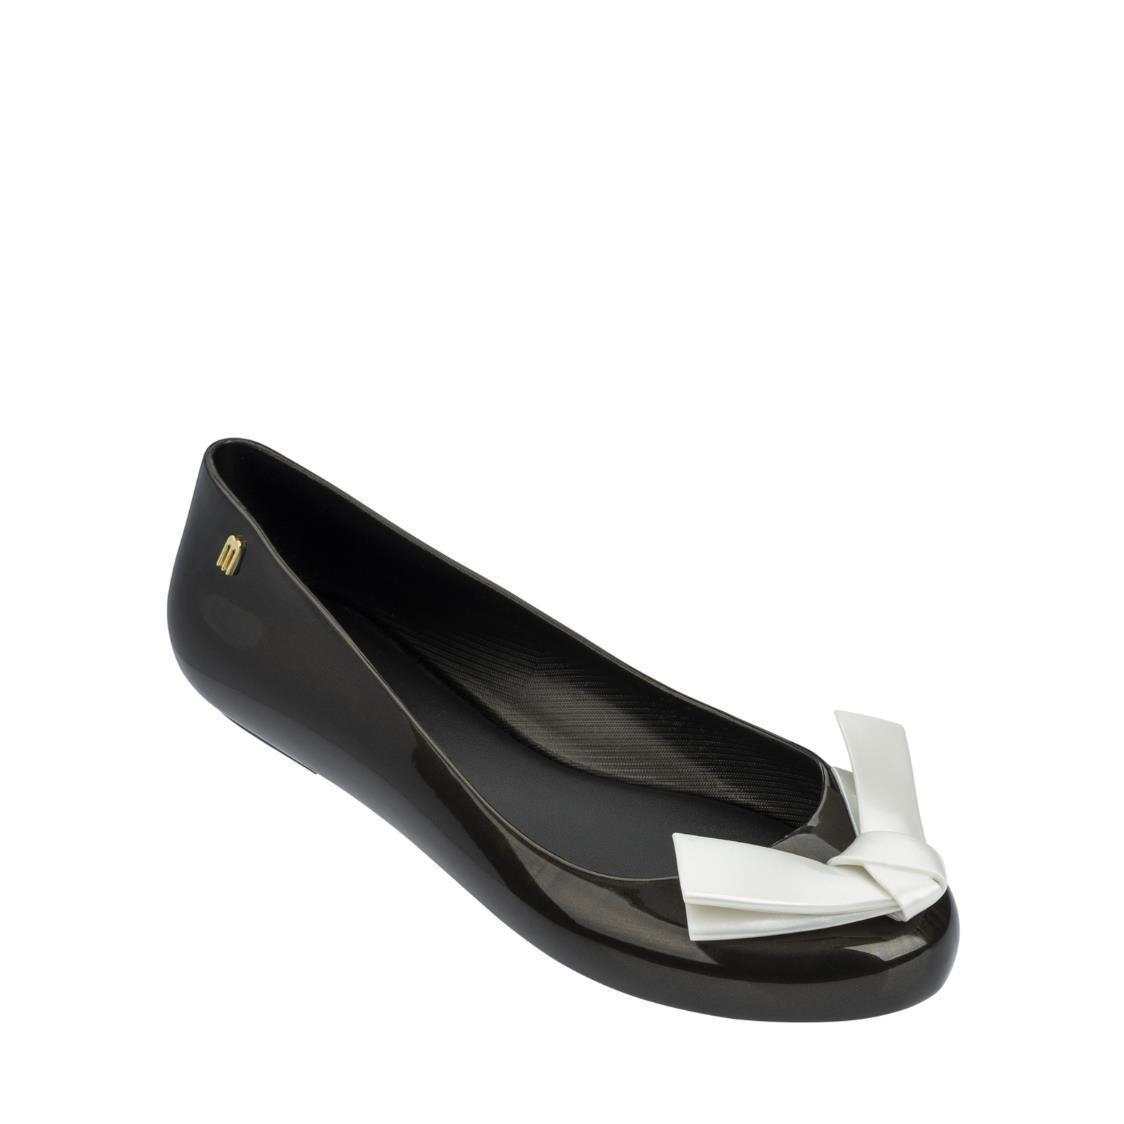 Space Love Flats Black-White